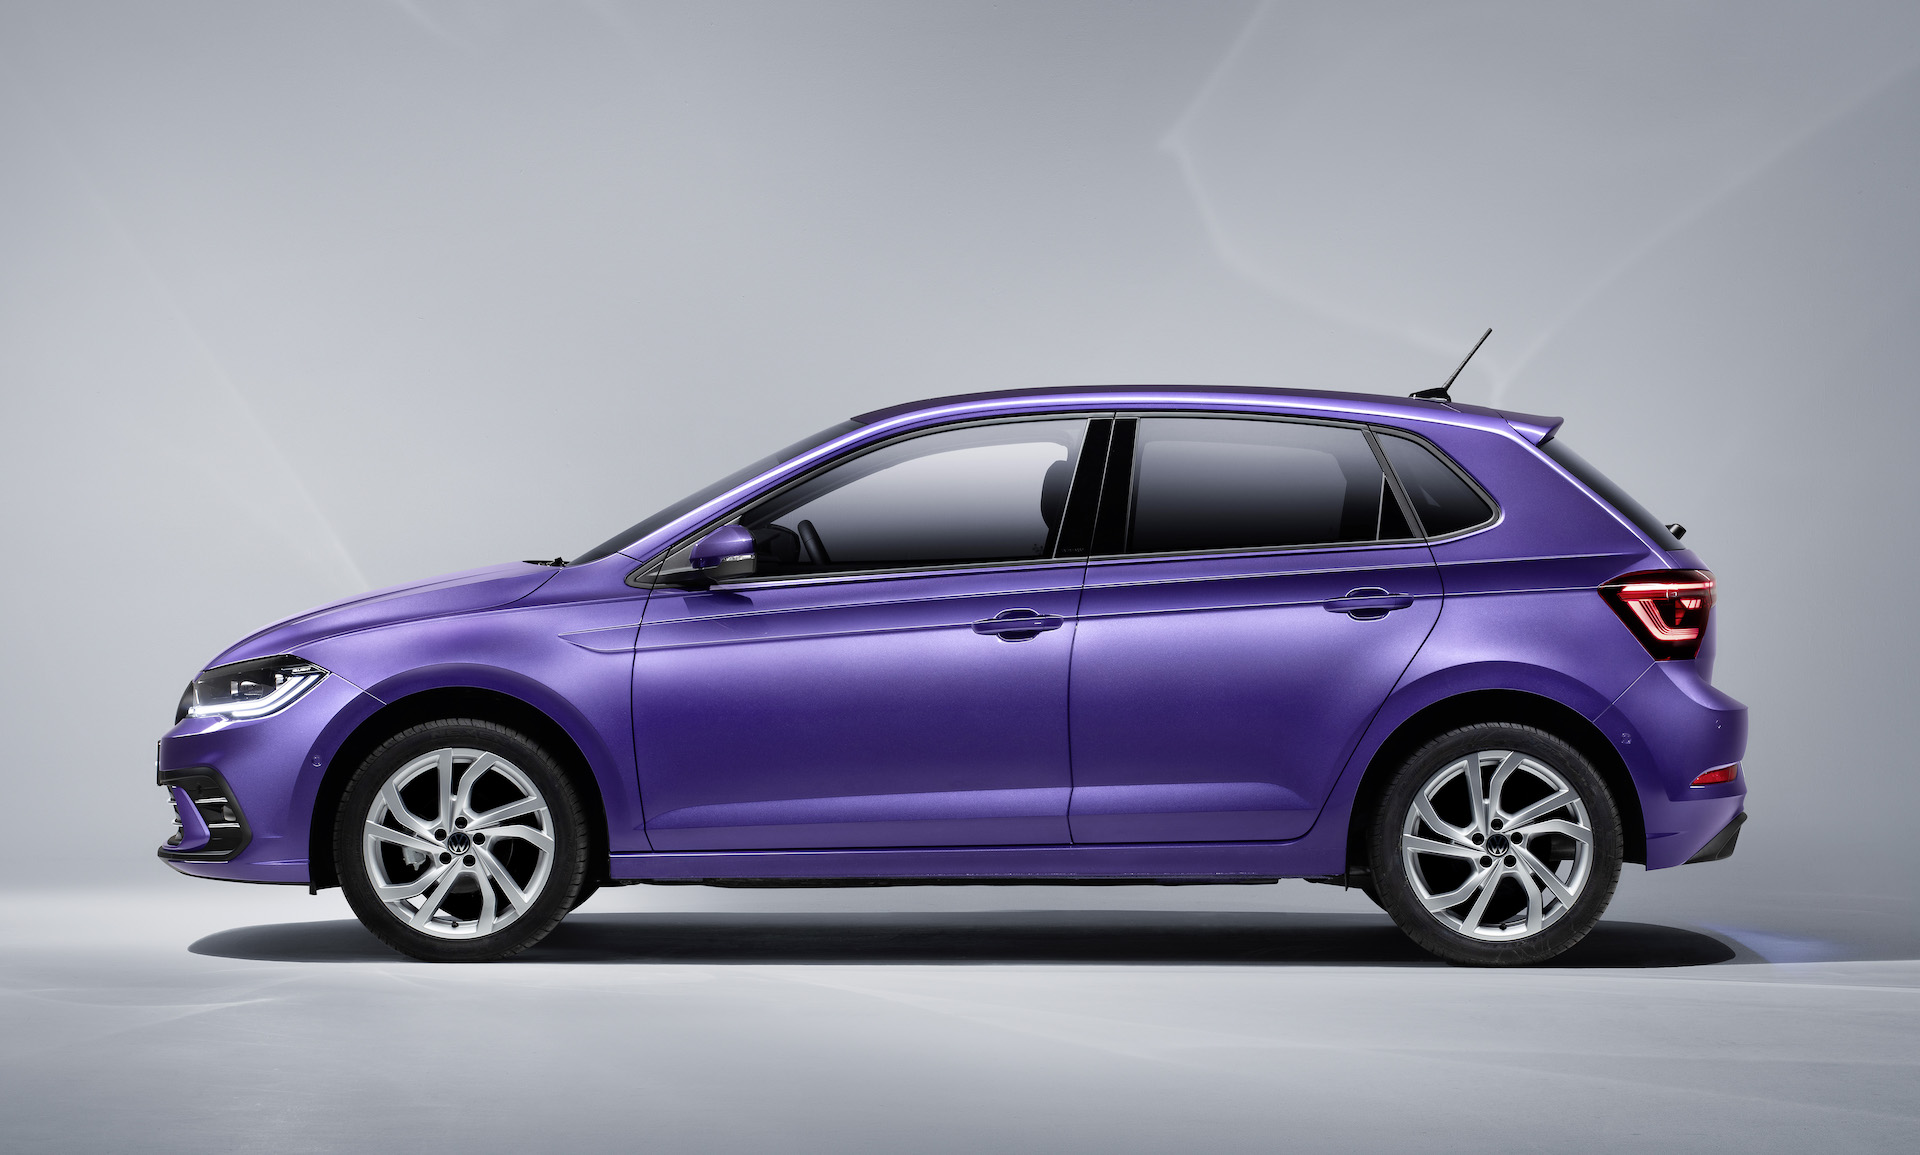 Volkswagen Polo 2022 EURO Life Style R-Line (1)